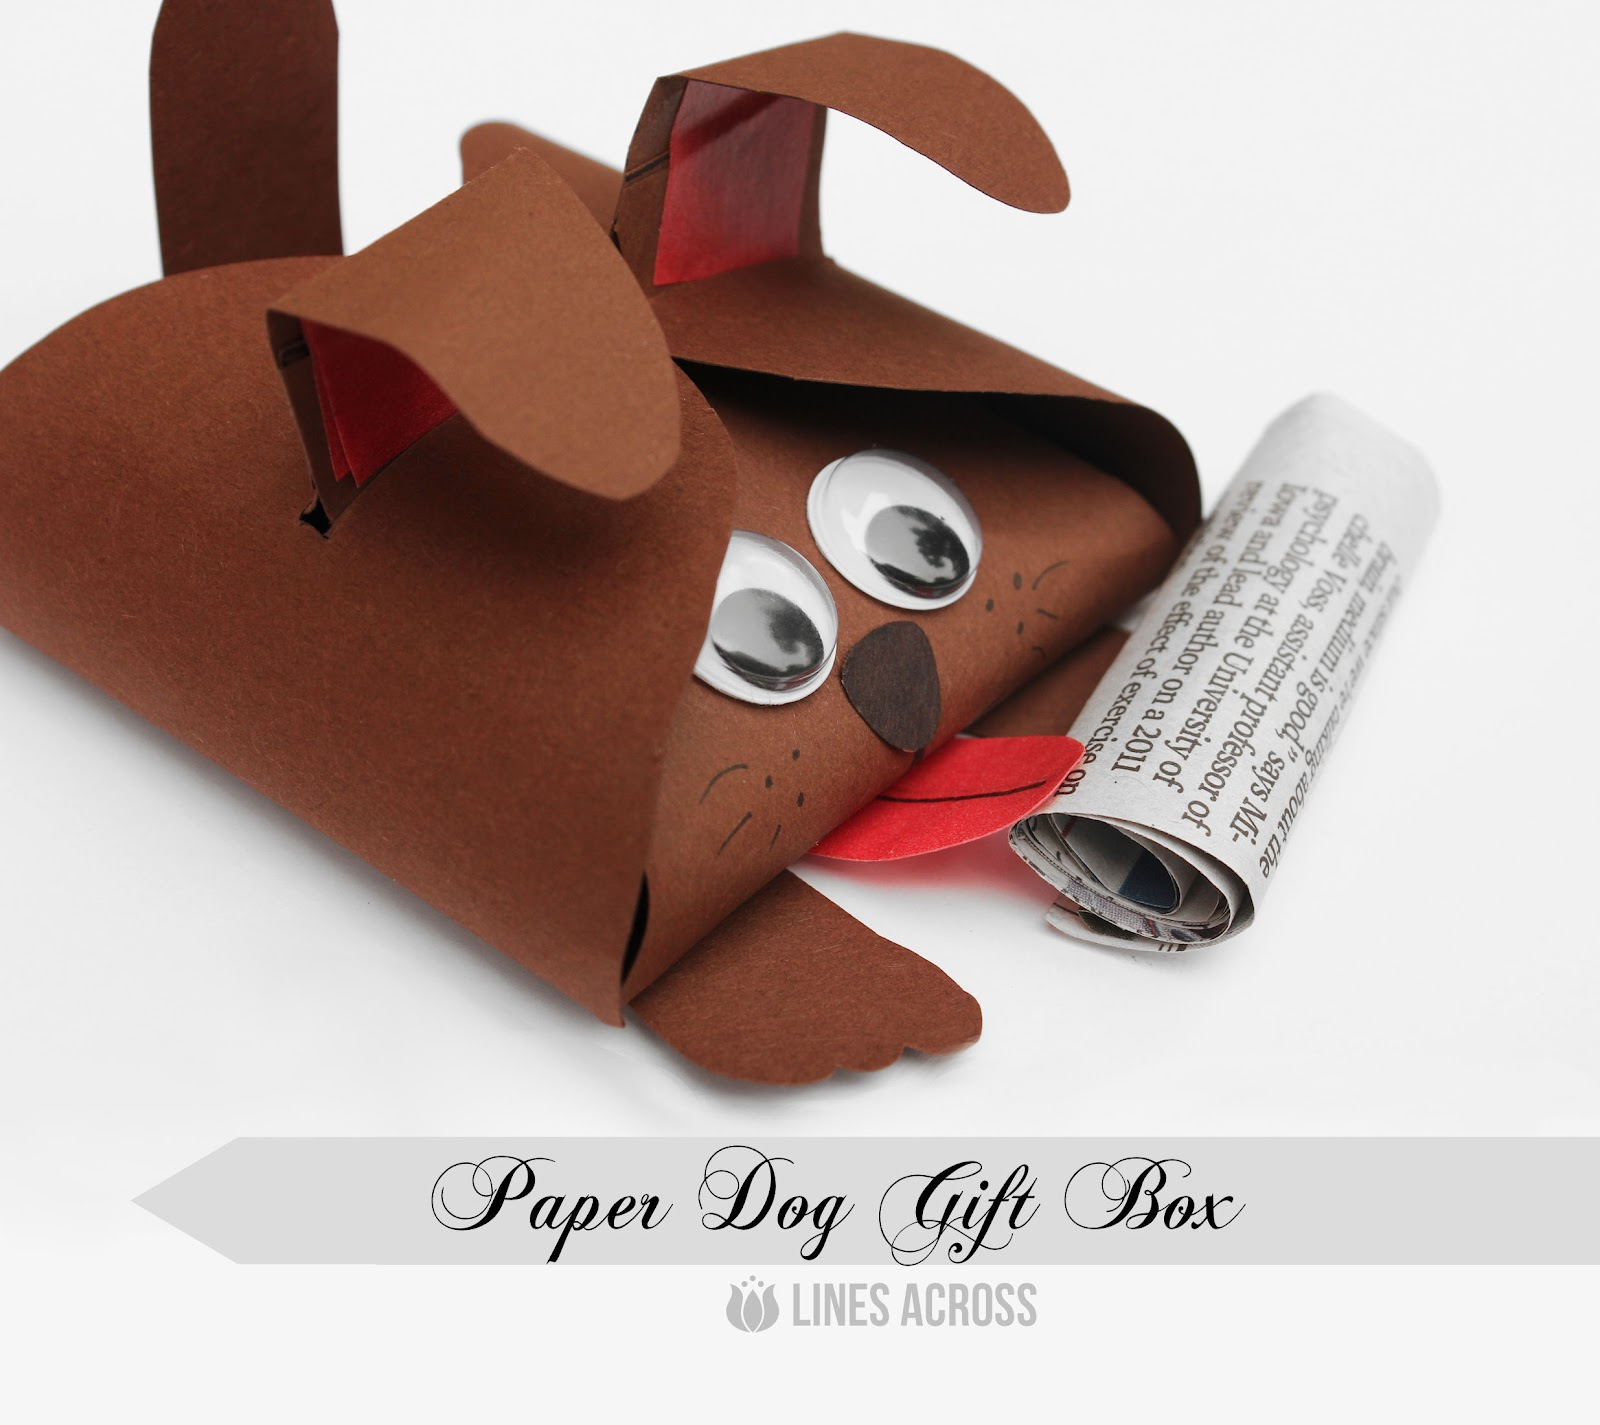 Dog and Cat Paper Gift Boxes   Lines Across